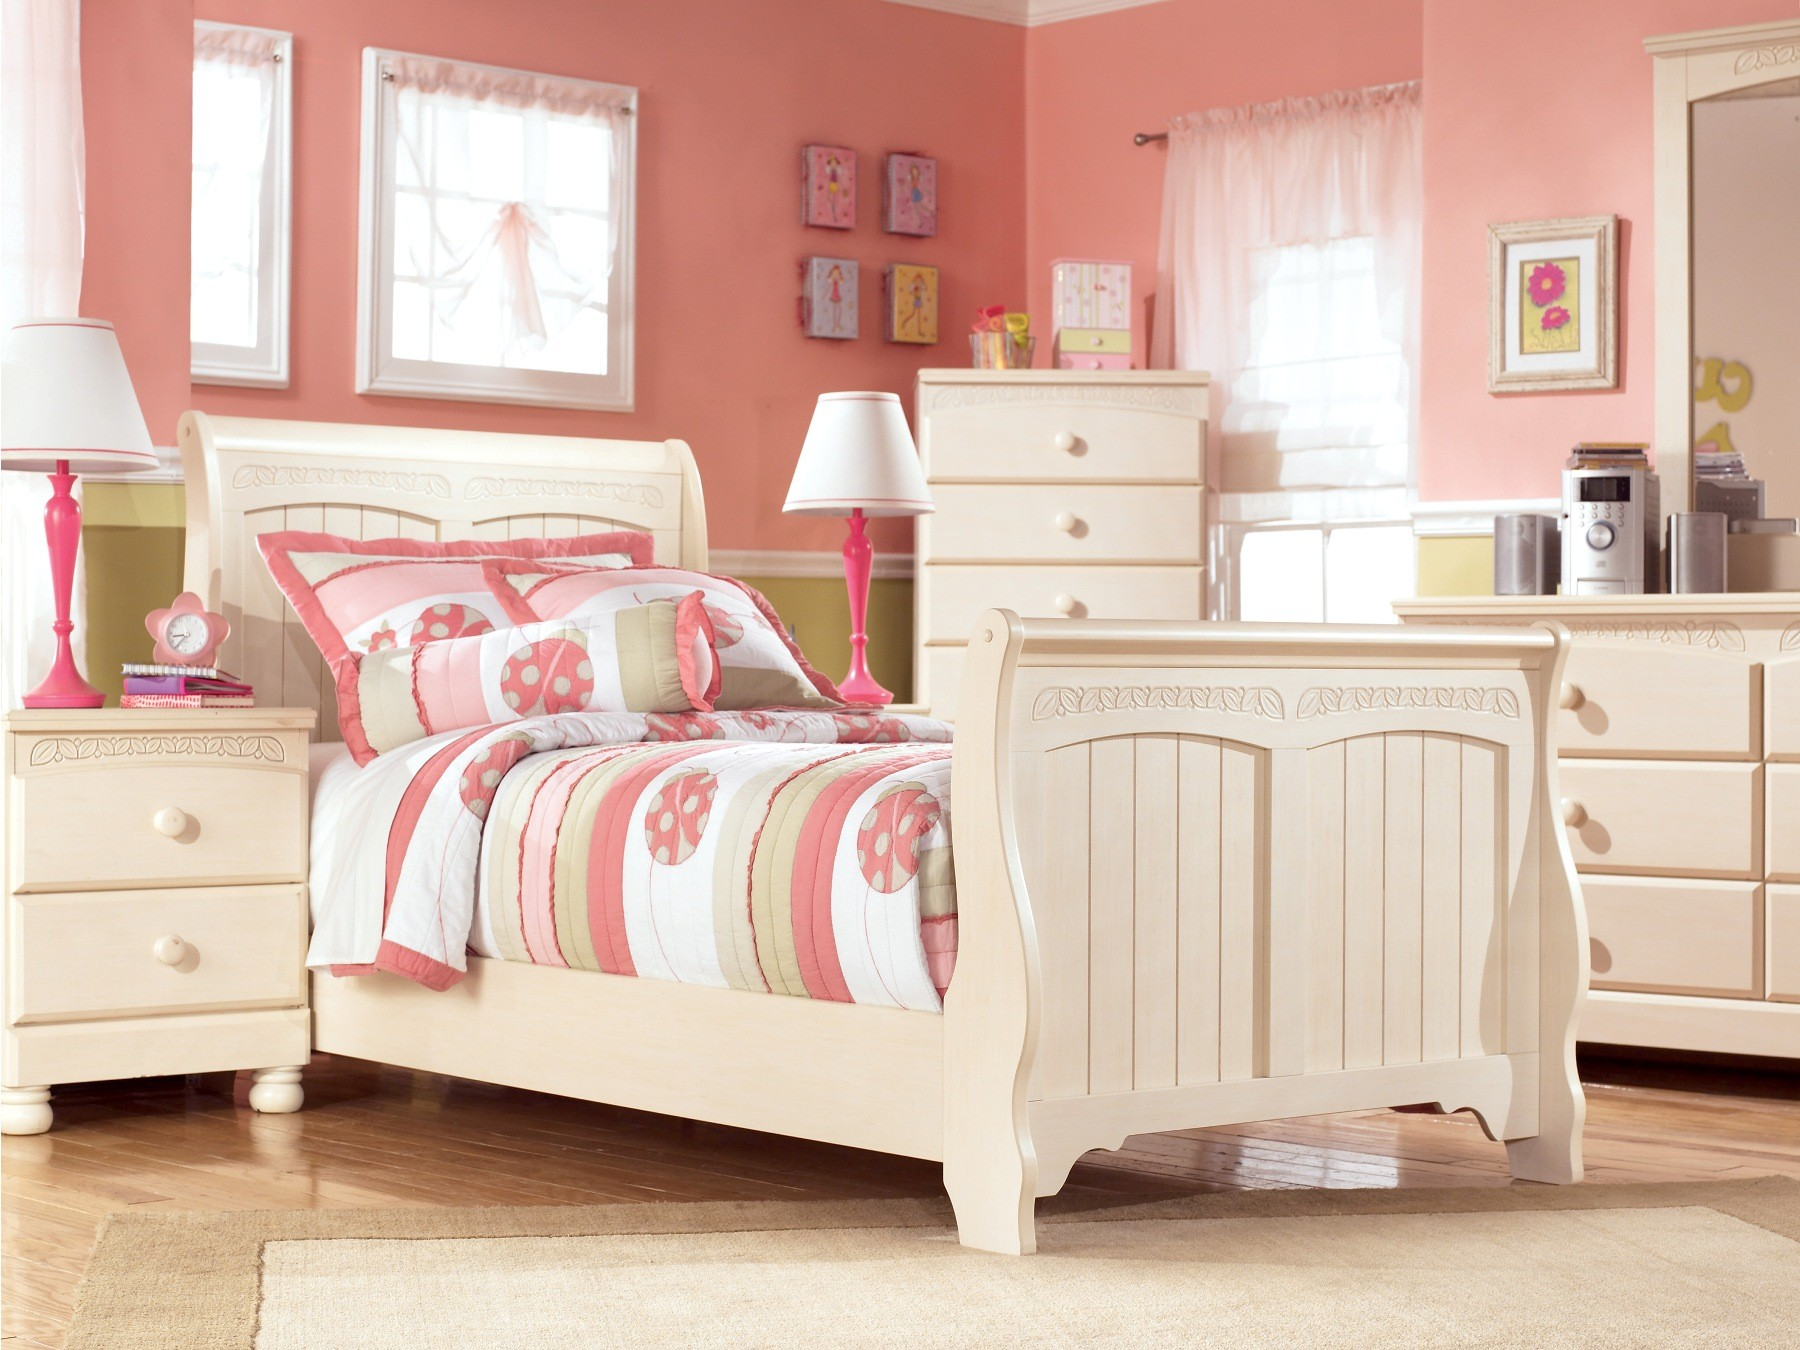 Cottage retreat youth sleigh bedroom set from ashley b213 62 63 82 coleman furniture Cottage retreat collection bedroom furniture